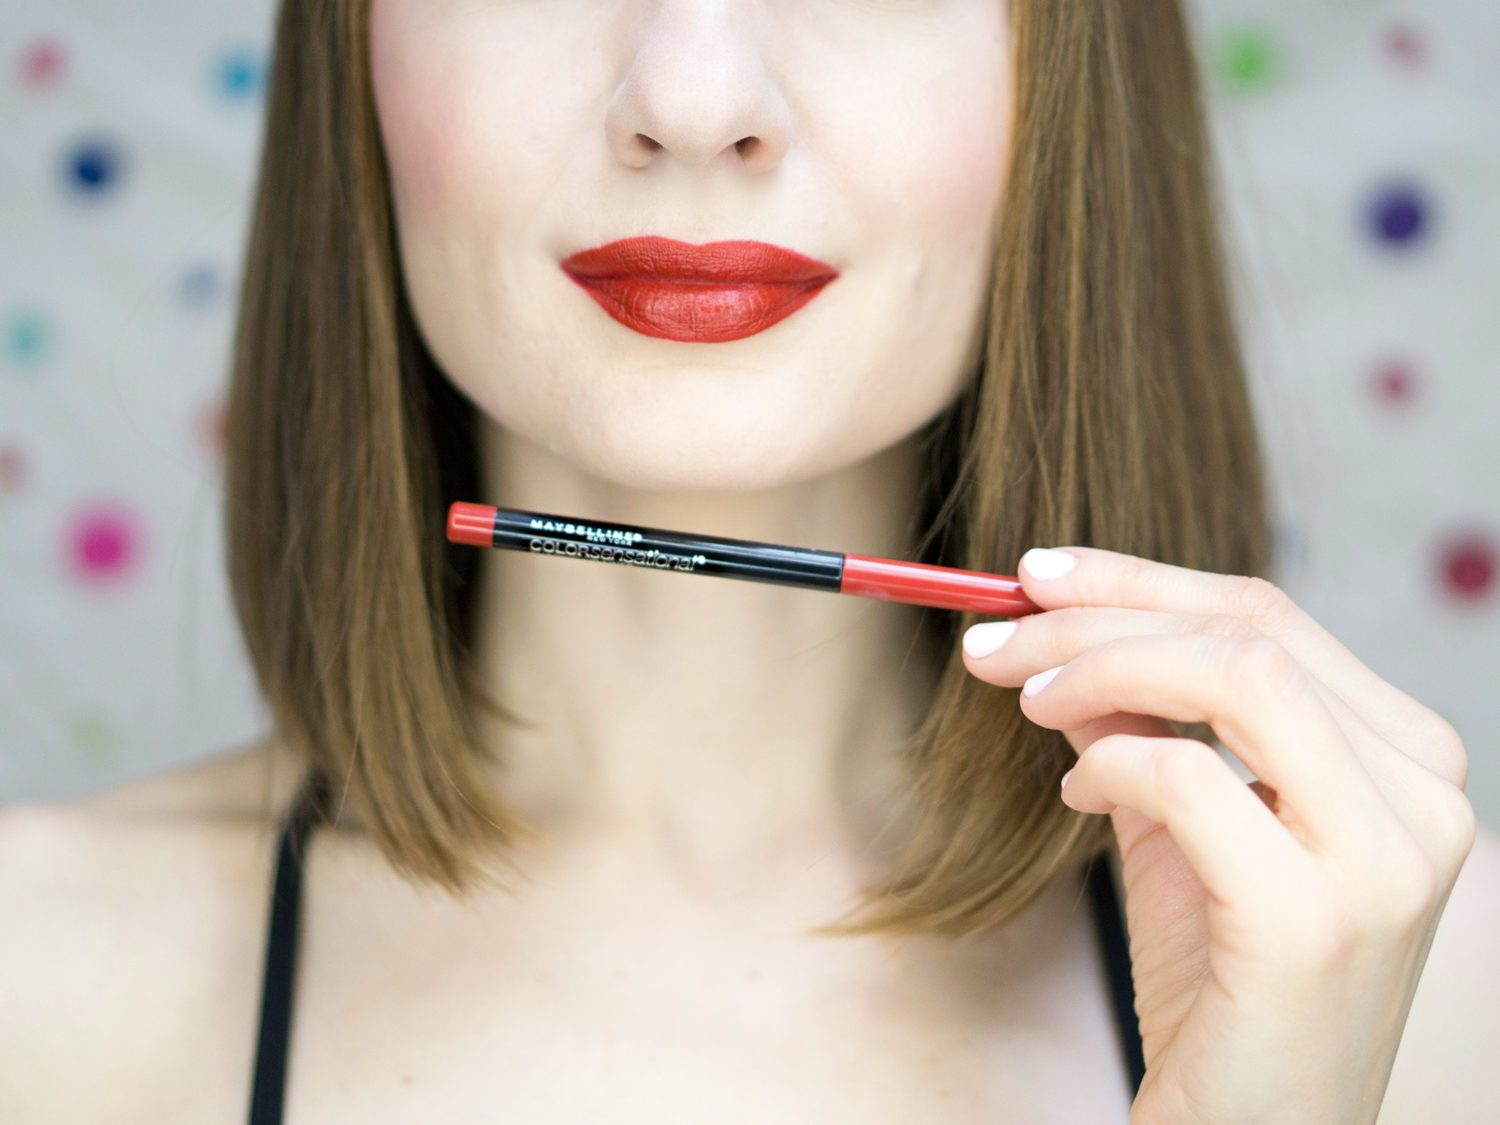 Maybelline Color Sensational Shaping Lip Liners - Review and Swatches